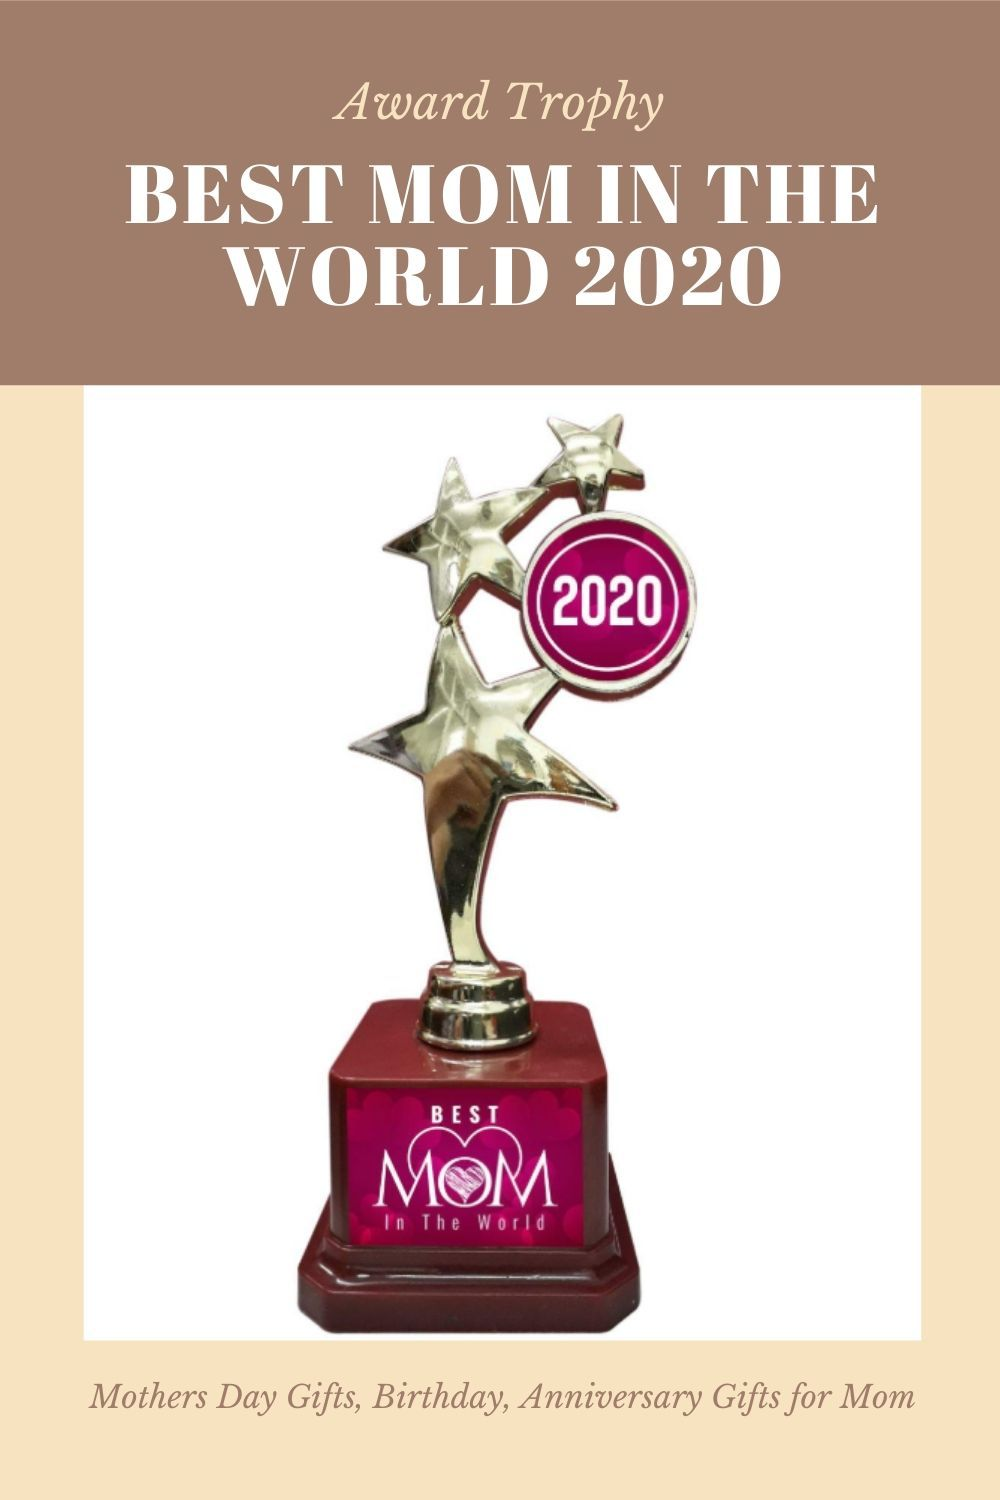 Ma Tujhe Salaam Trophy Design Best Mom Gifts Mothers Day Gifts Anniversary Gift Ideas For Mom Gifts For Mom Anniversary Gifts Gift Suggestions Best mom in the world award